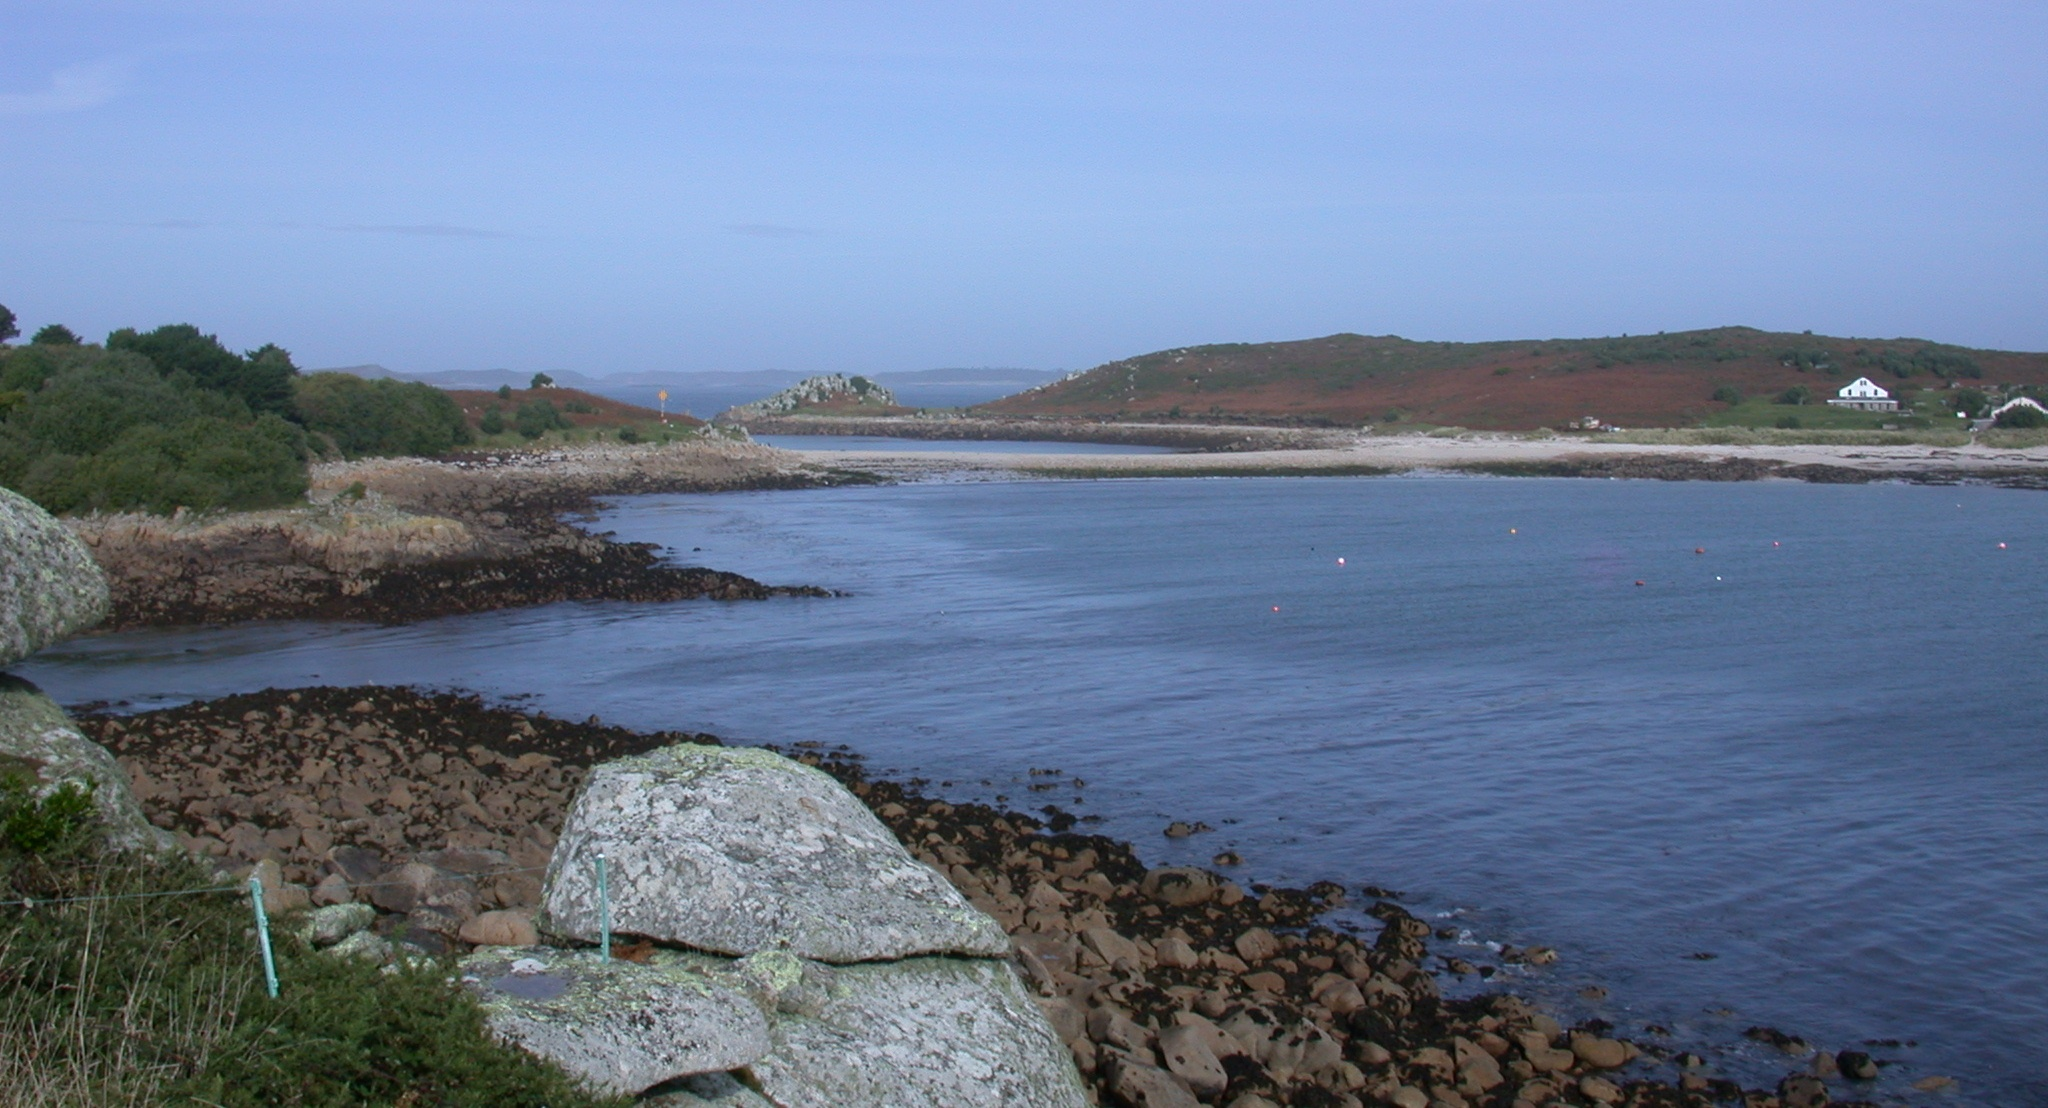 St. Agnes and Gugh - the most South-westerly part of the UK